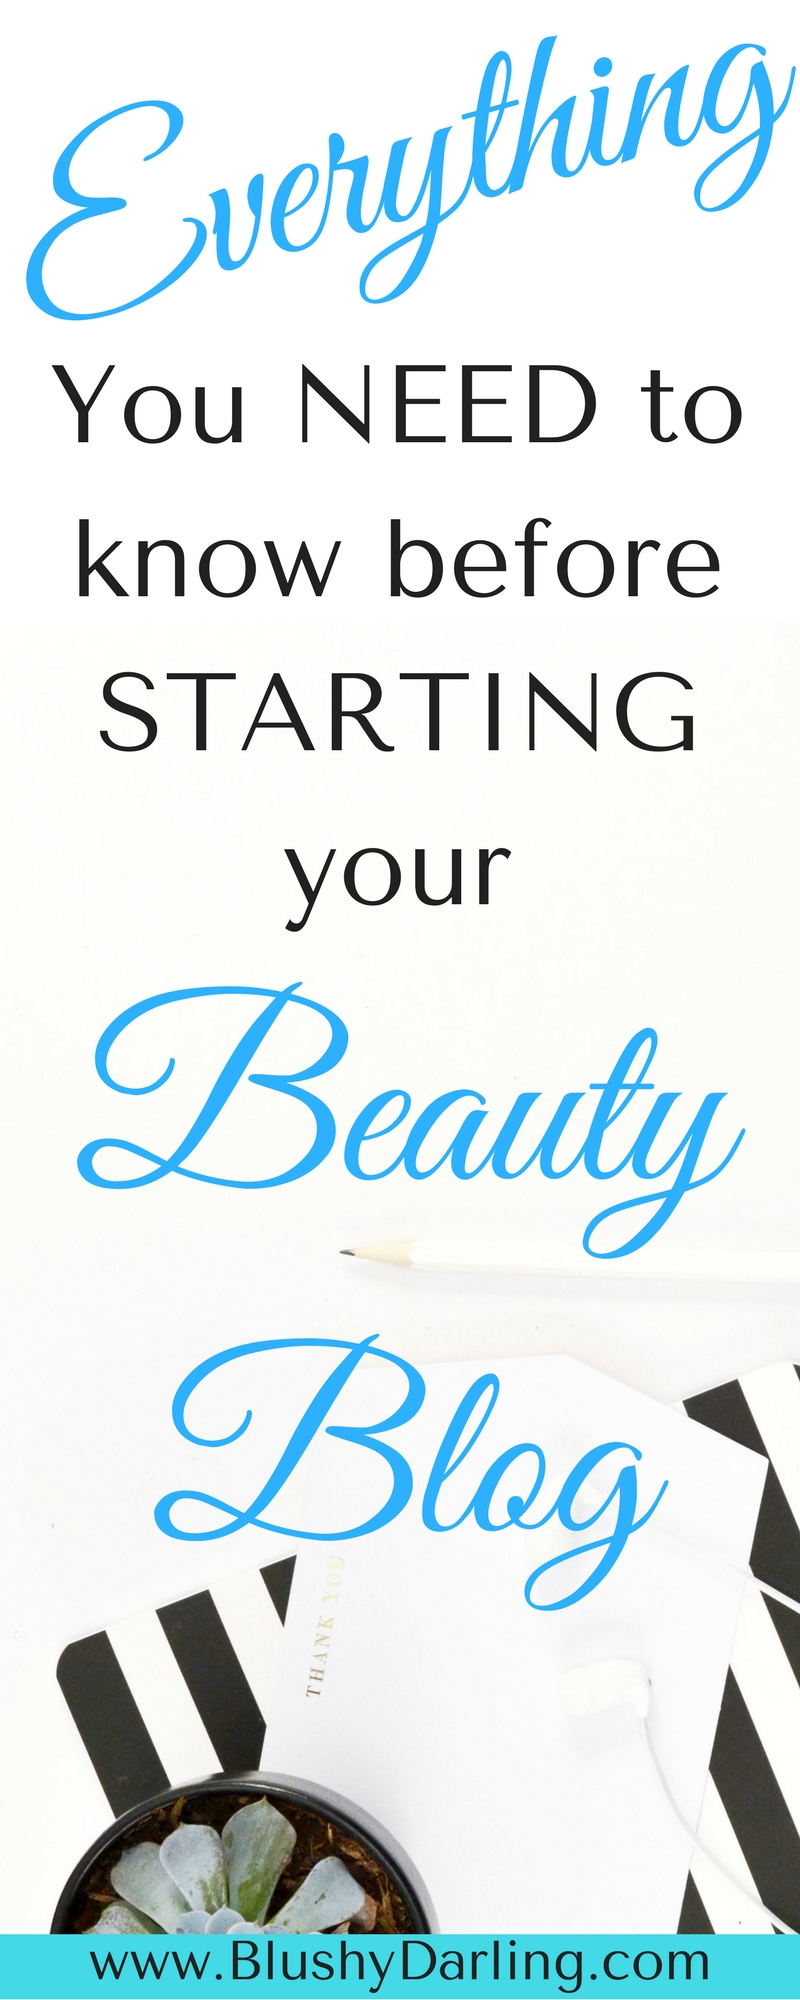 Planning of starting a beauty blog? Here's everything you need to know before starting a blog